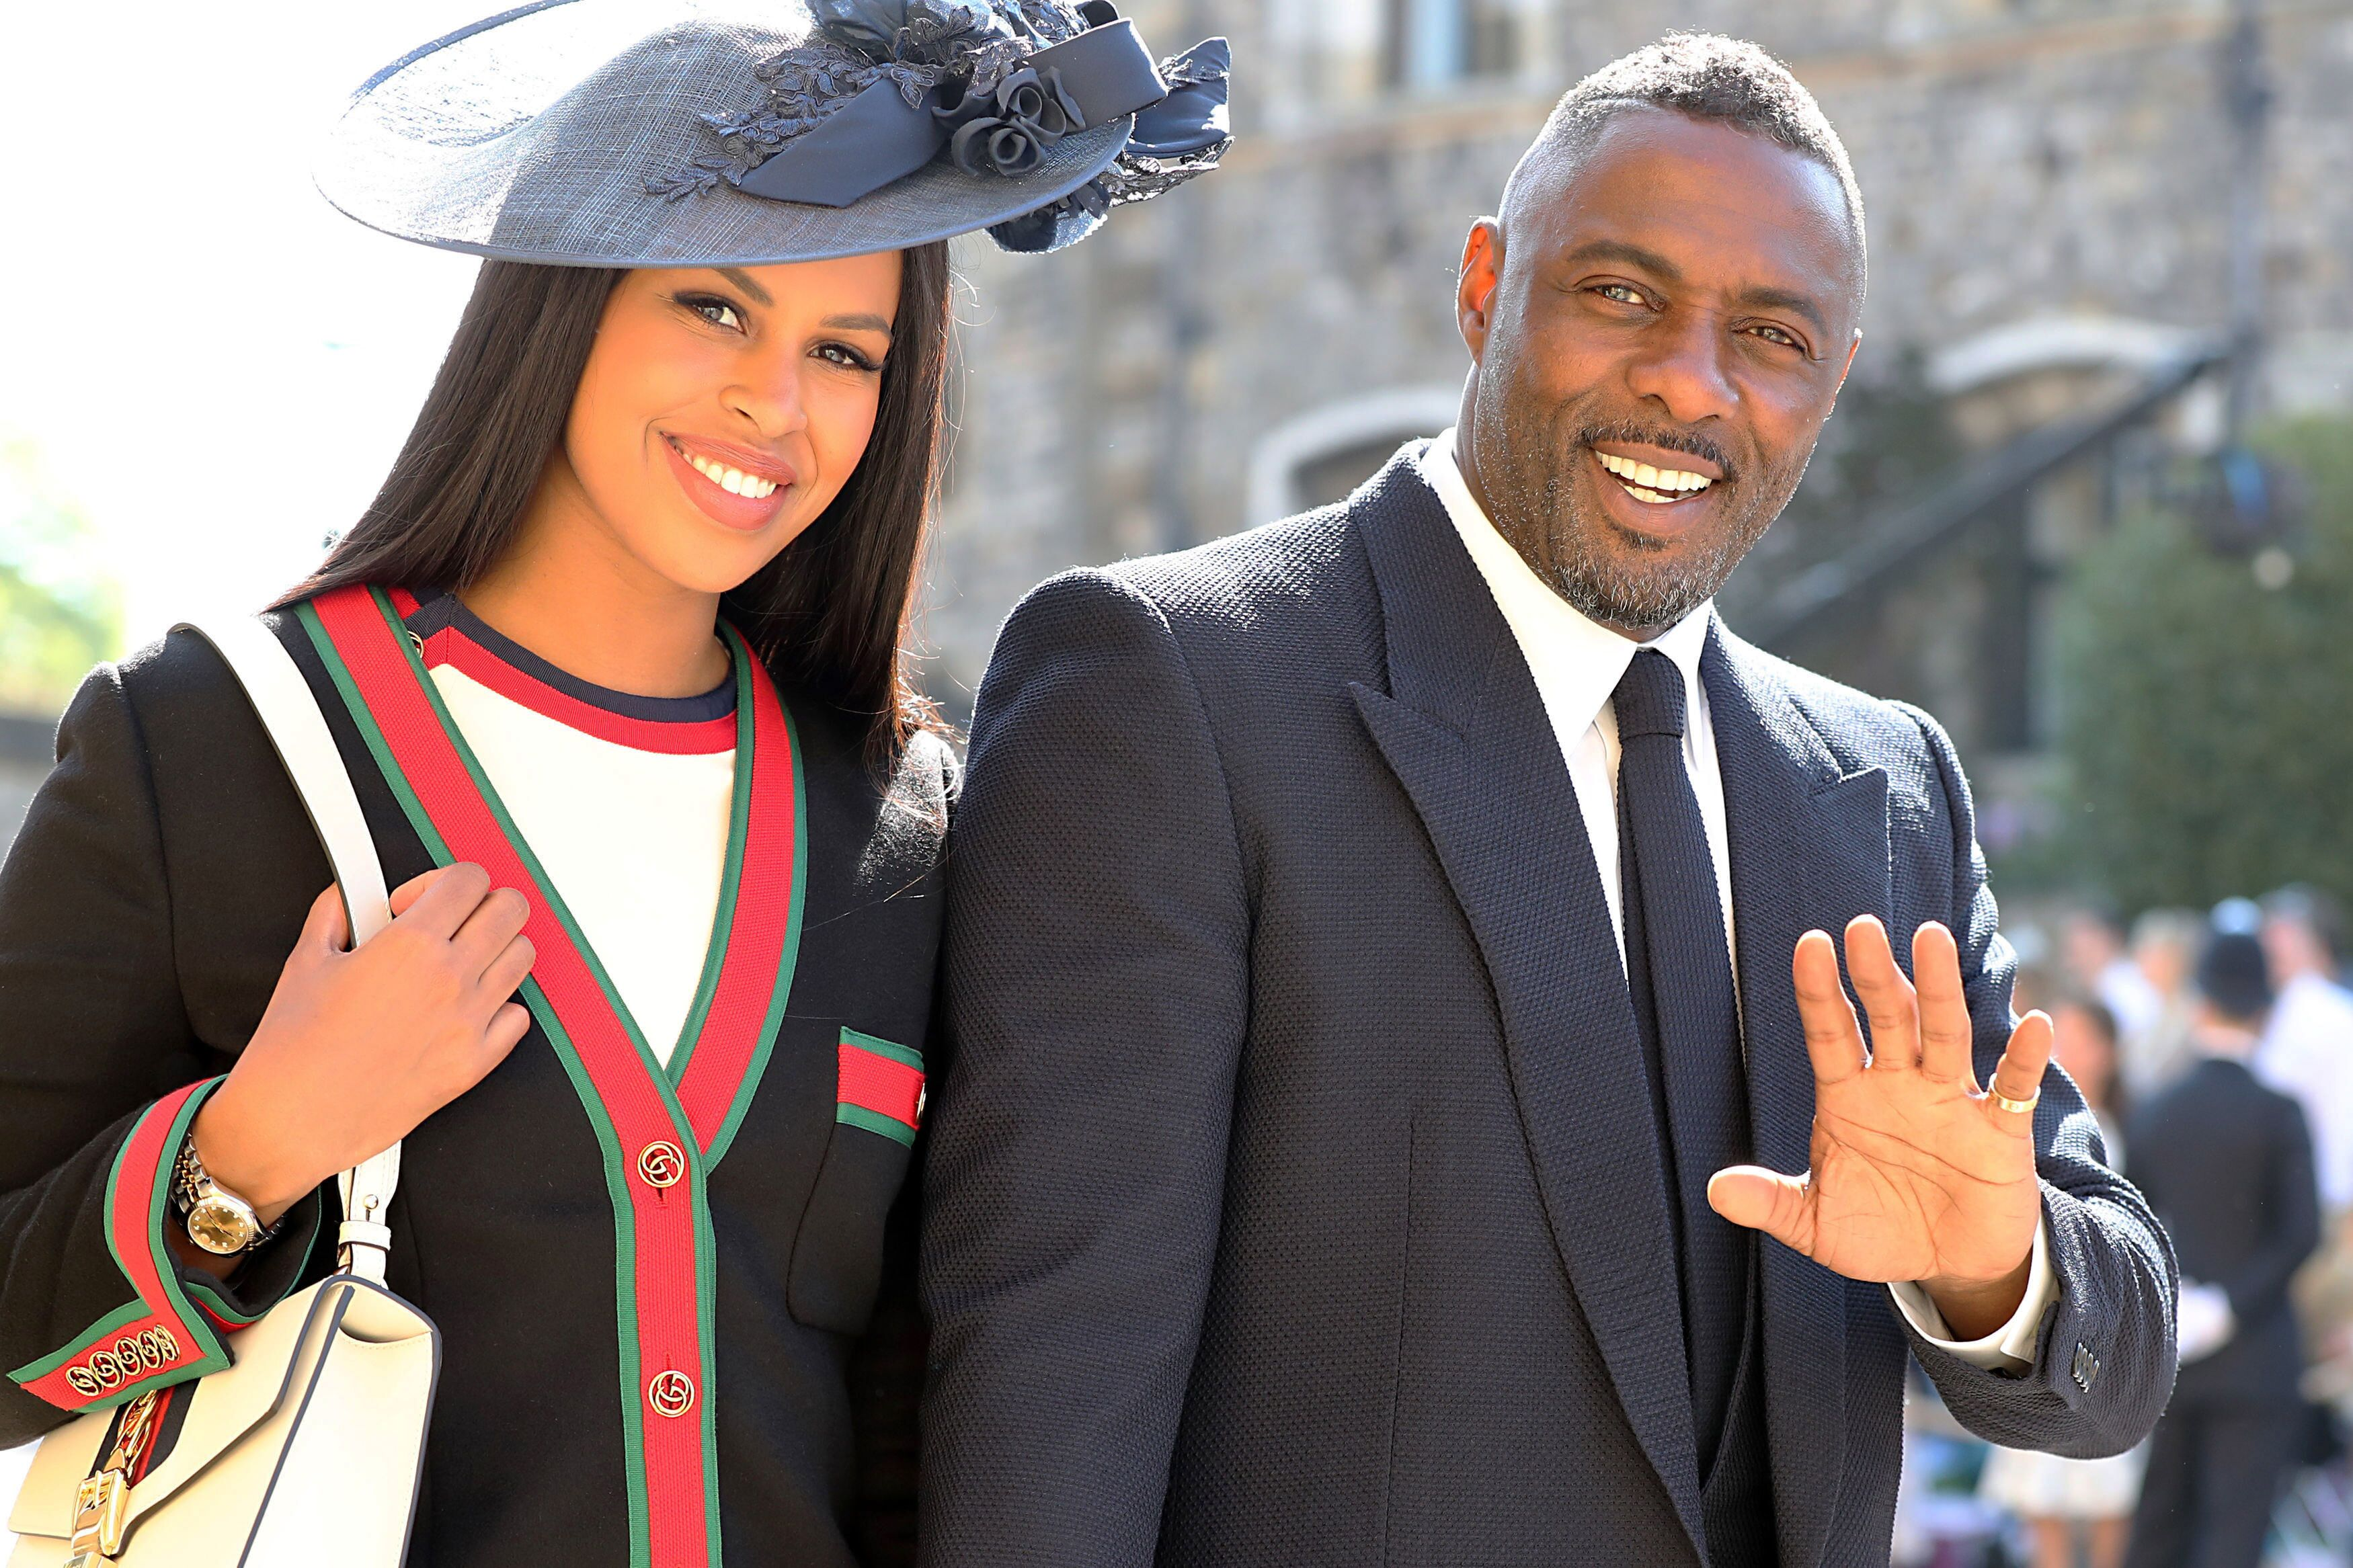 Idris Elba and his wife, Sabrina Dhowre at St. George's Chapel at the Windsor Castle attending Prince Harry and Meghan Markle's royal wedding. in May 2018. | Photo: Getty Images